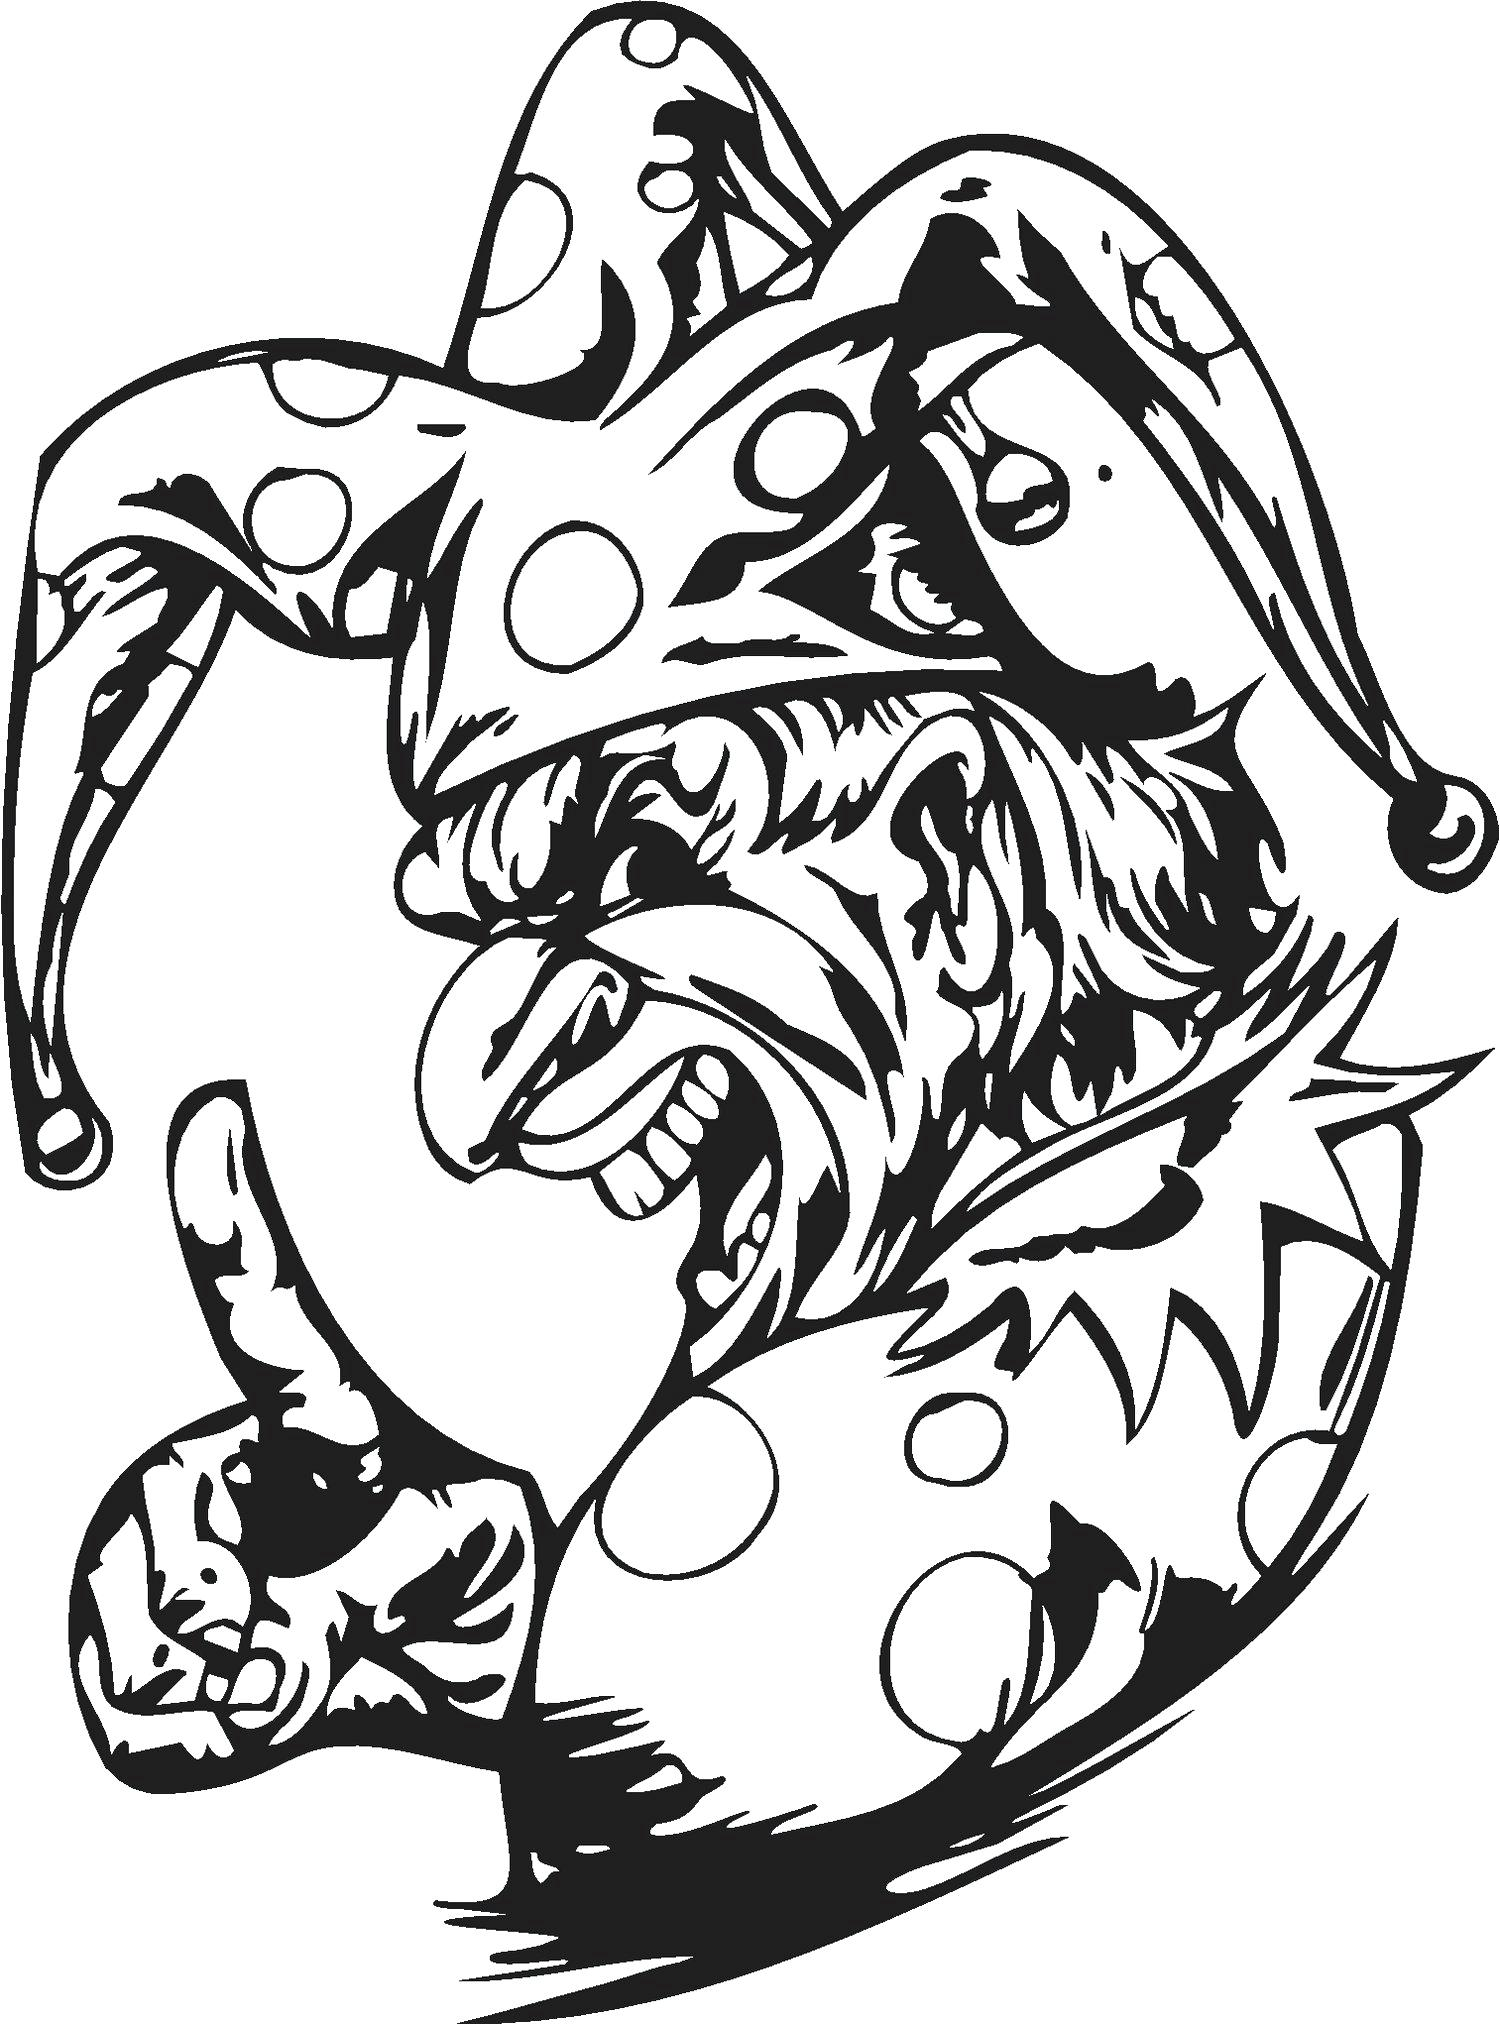 scary demon skull coloring pages image result for evil demon coloring pages monster pages demon scary skull coloring